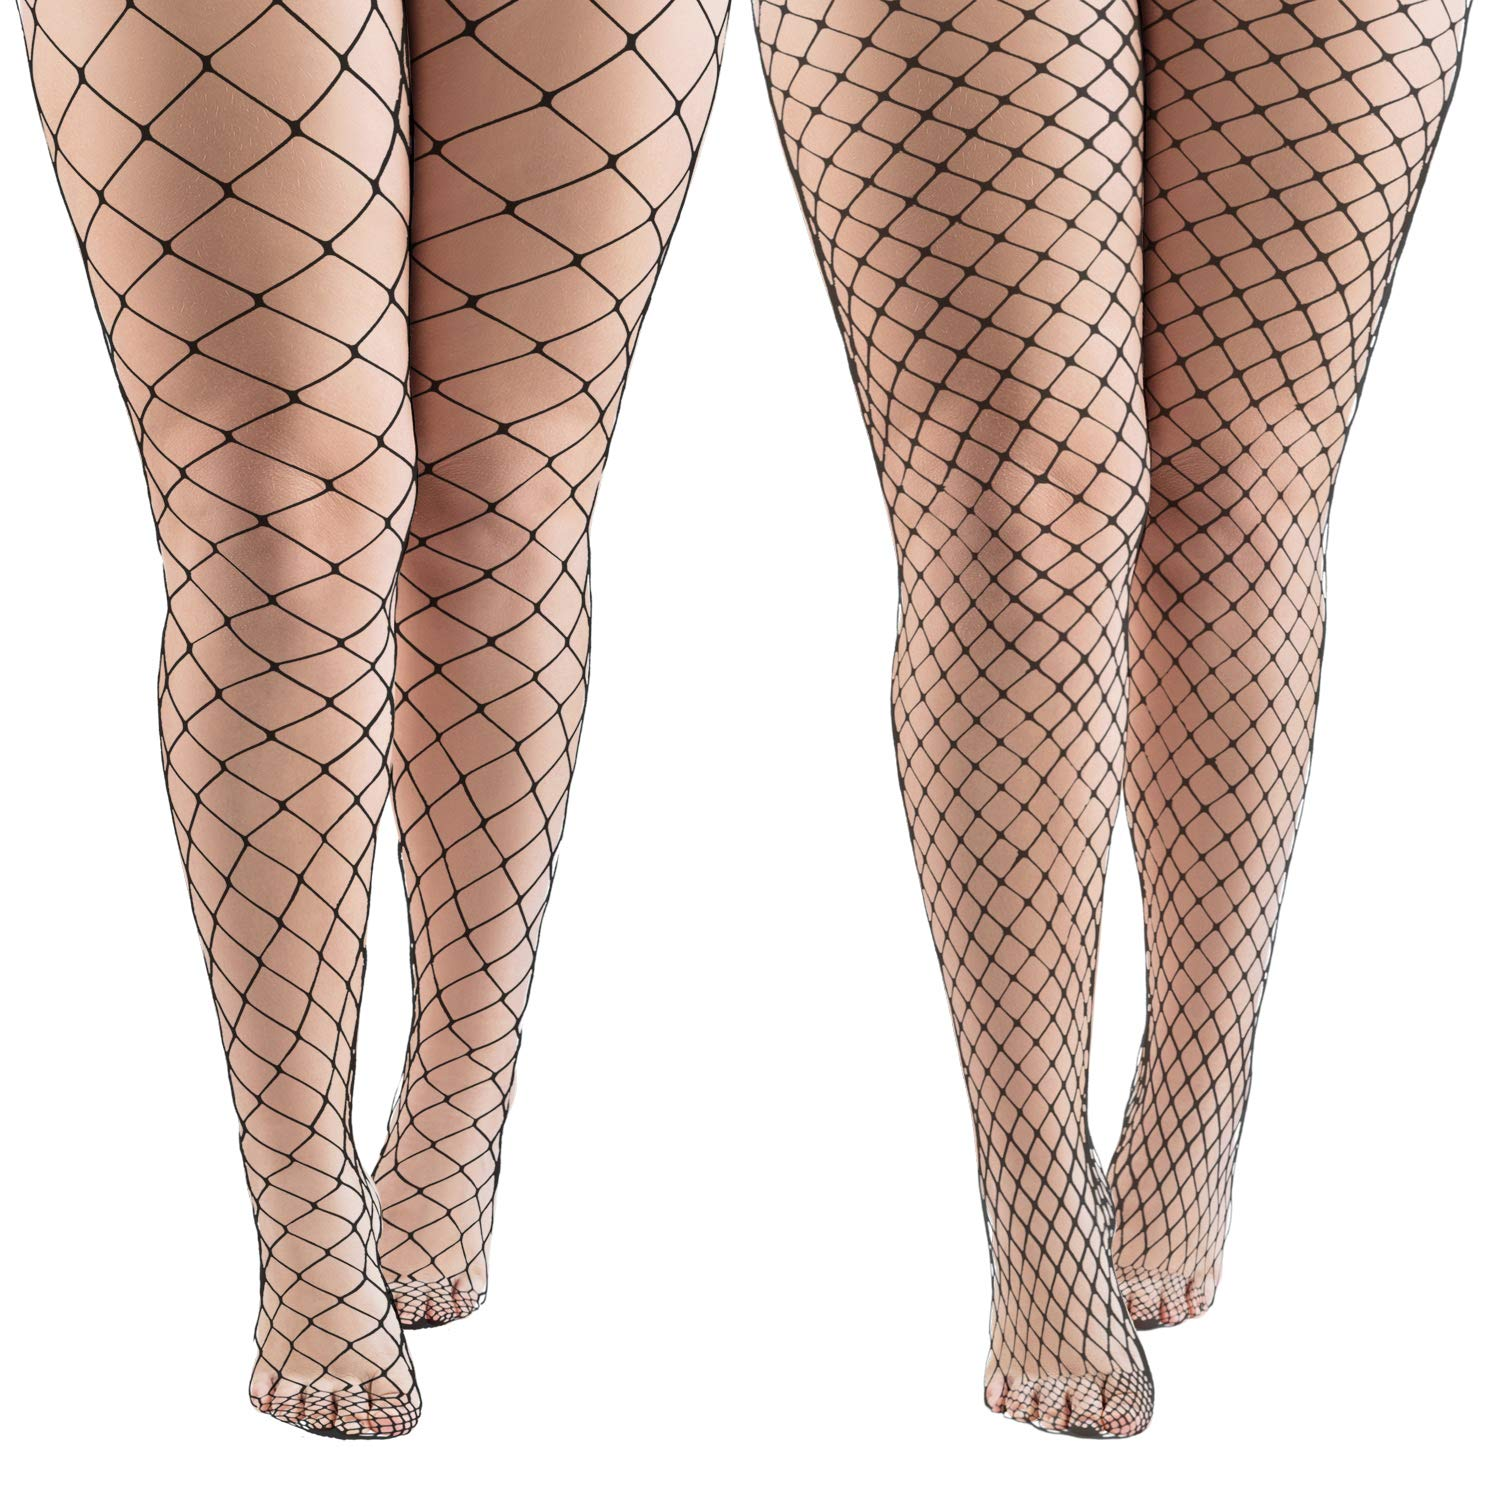 4b5decc8f Aneco 4 Pairs Black Fishnets Tights Sexy Fishnet Pantyhose Stockings Fishnet  Cross Mesh Stockings for Women at Amazon Women s Clothing store